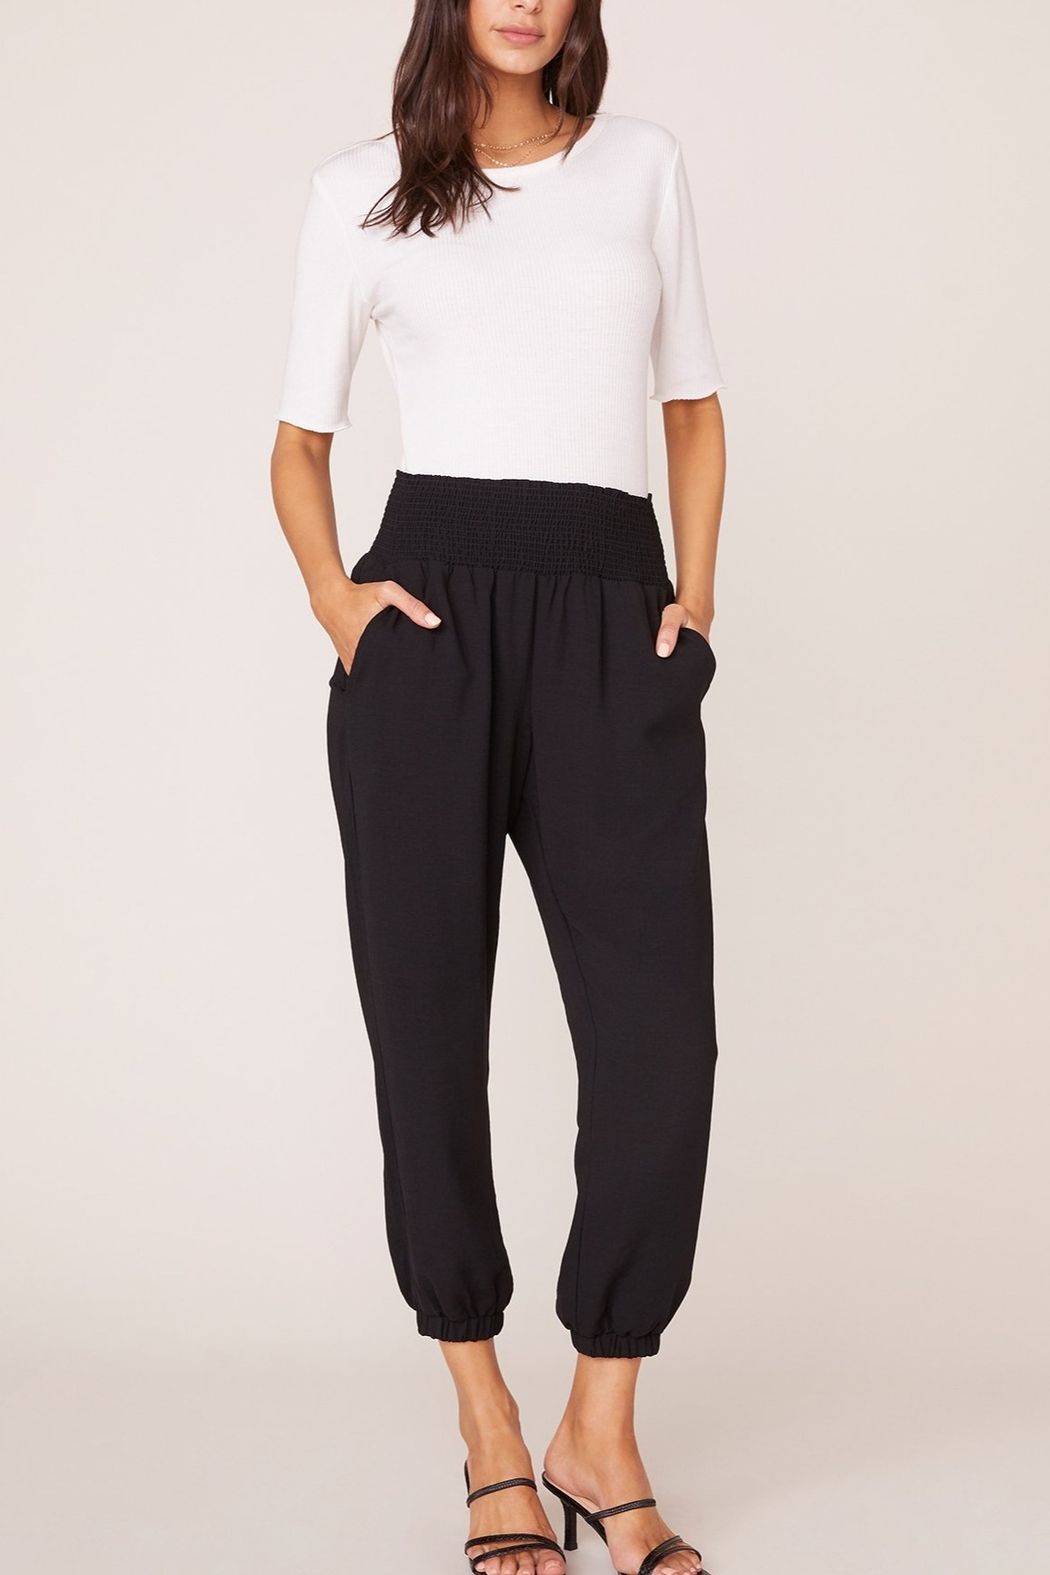 Jack by BB Dakota Black Jogger Pant - Main Image